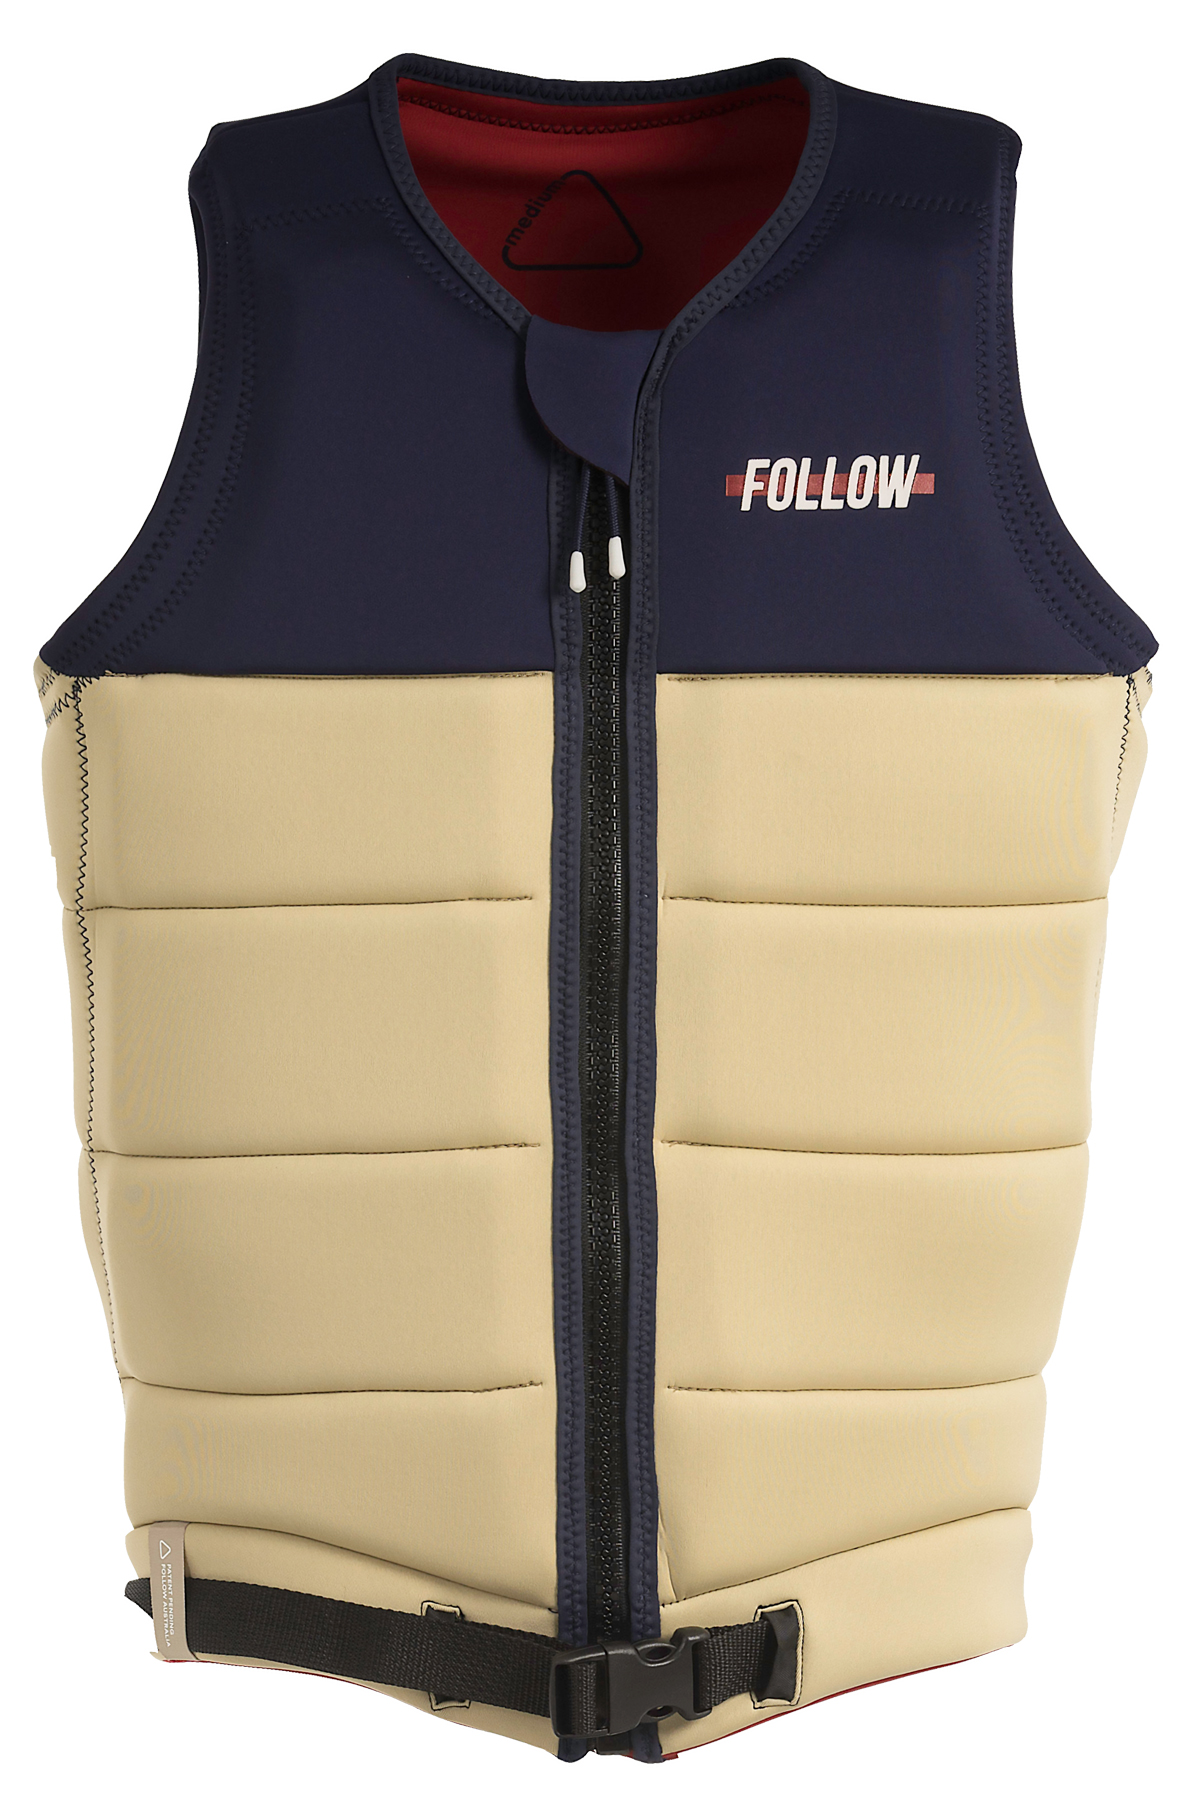 AXE IMPACT VEST - SAND FOLLOW 2019